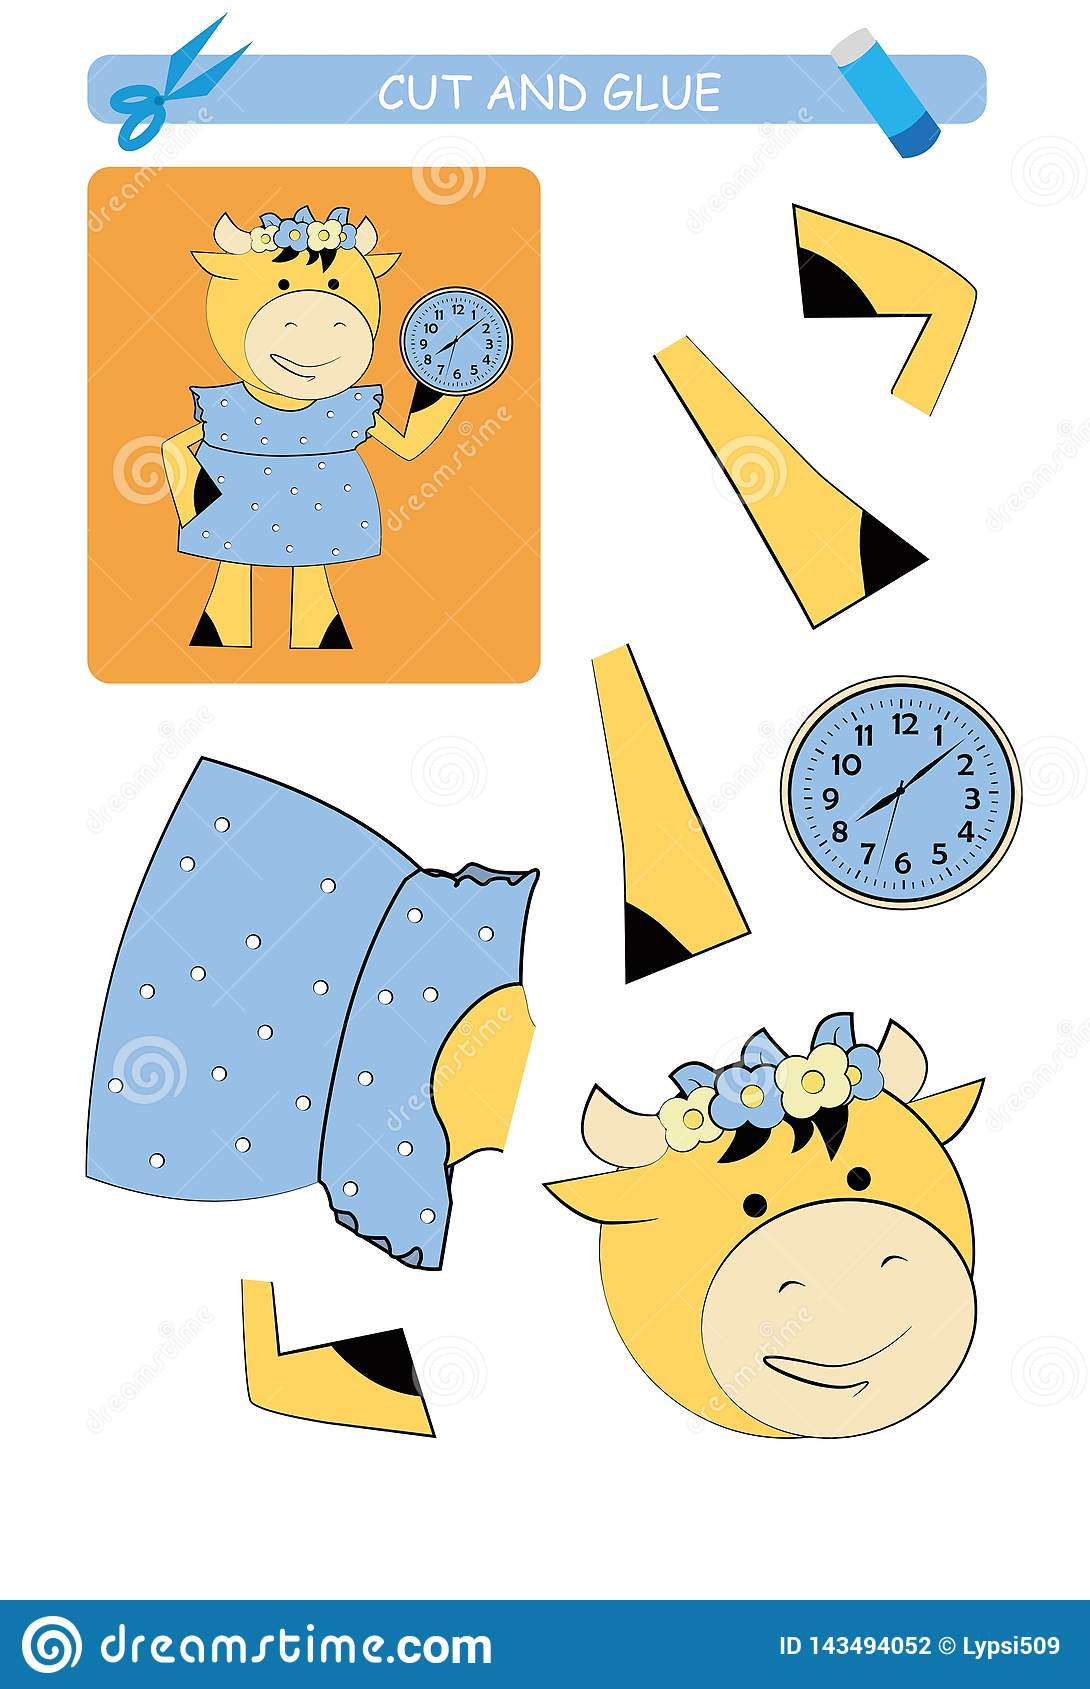 Cut And Glue Worksheet Cow Educational Game For Kids